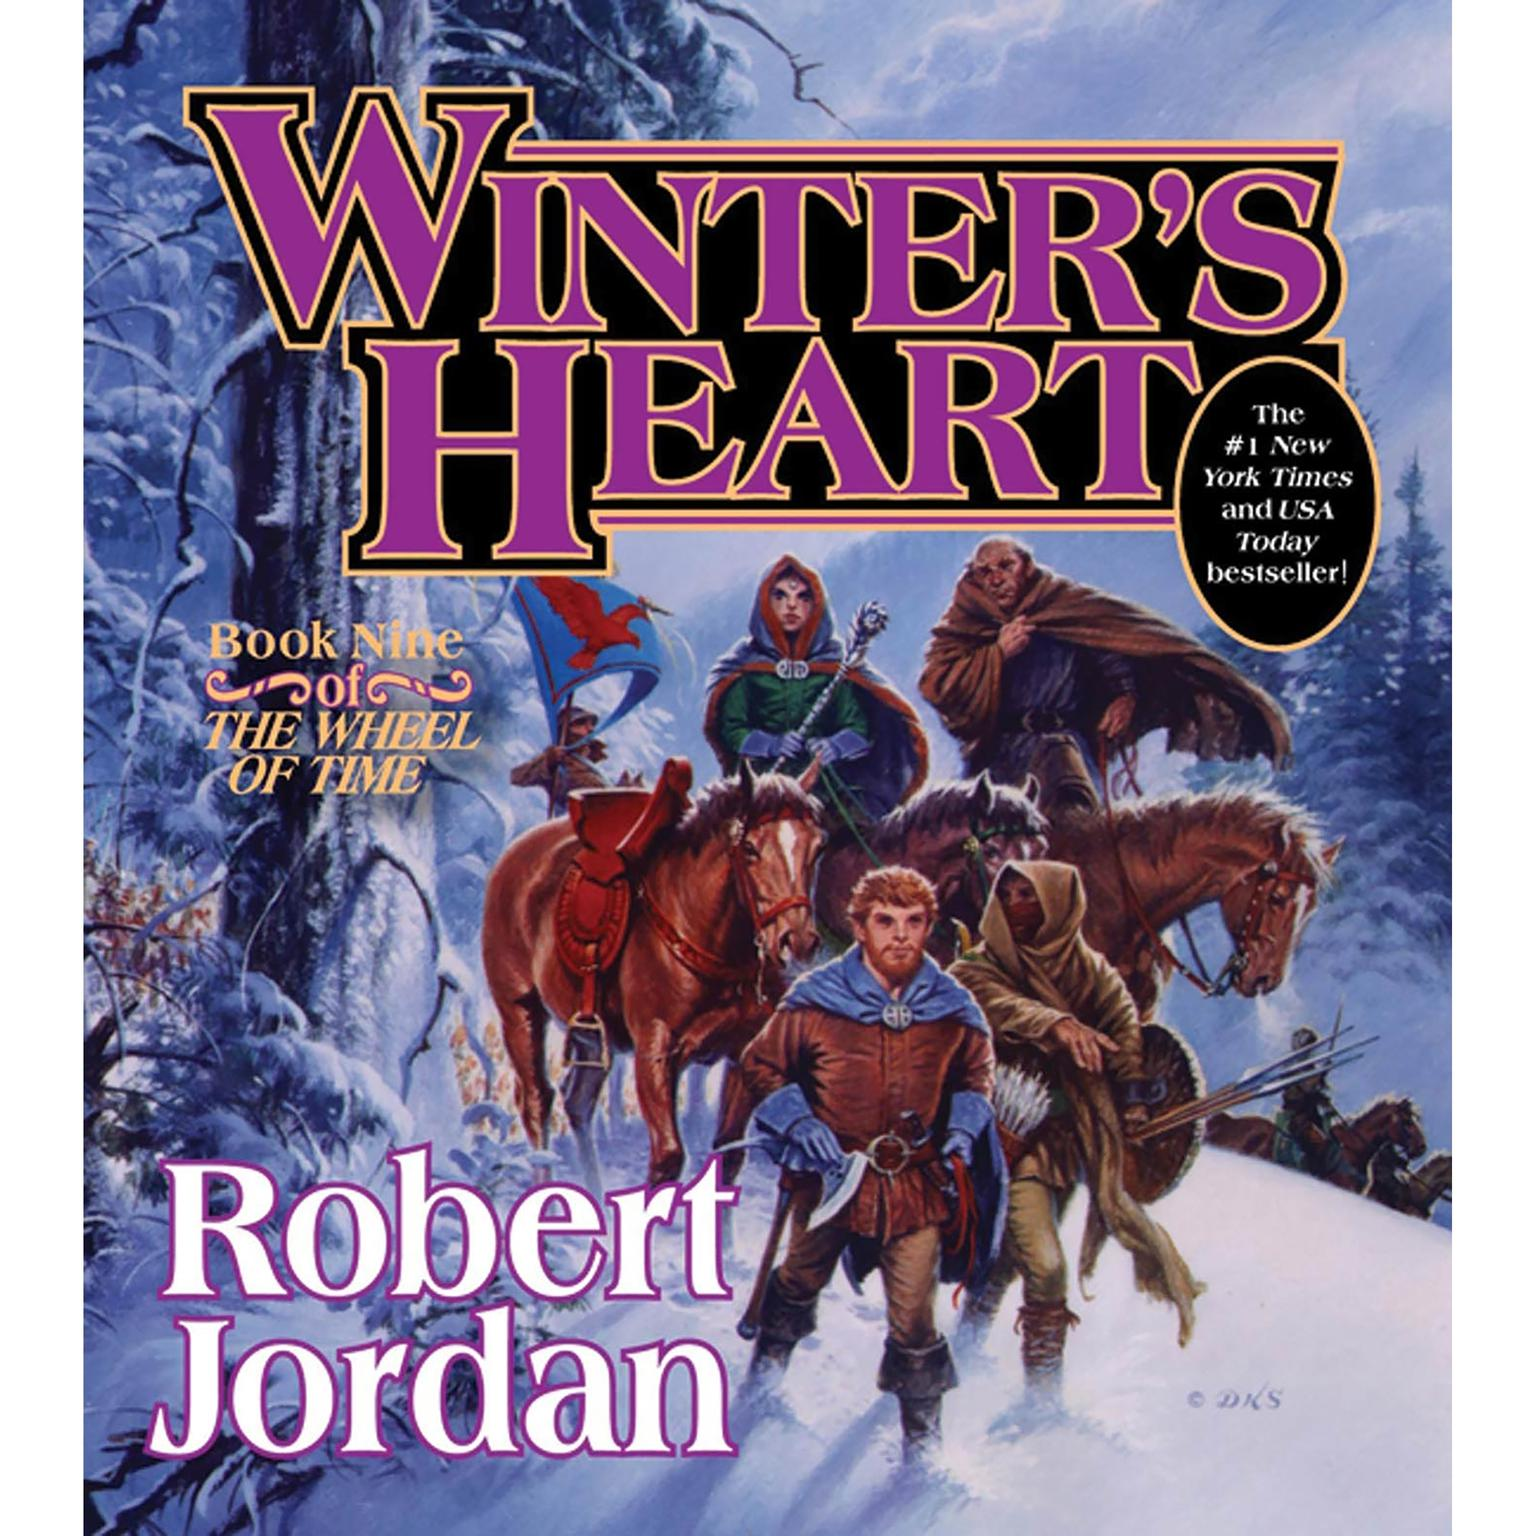 Printable Winter's Heart: Book Nine of 'The Wheel of Time' Audiobook Cover Art